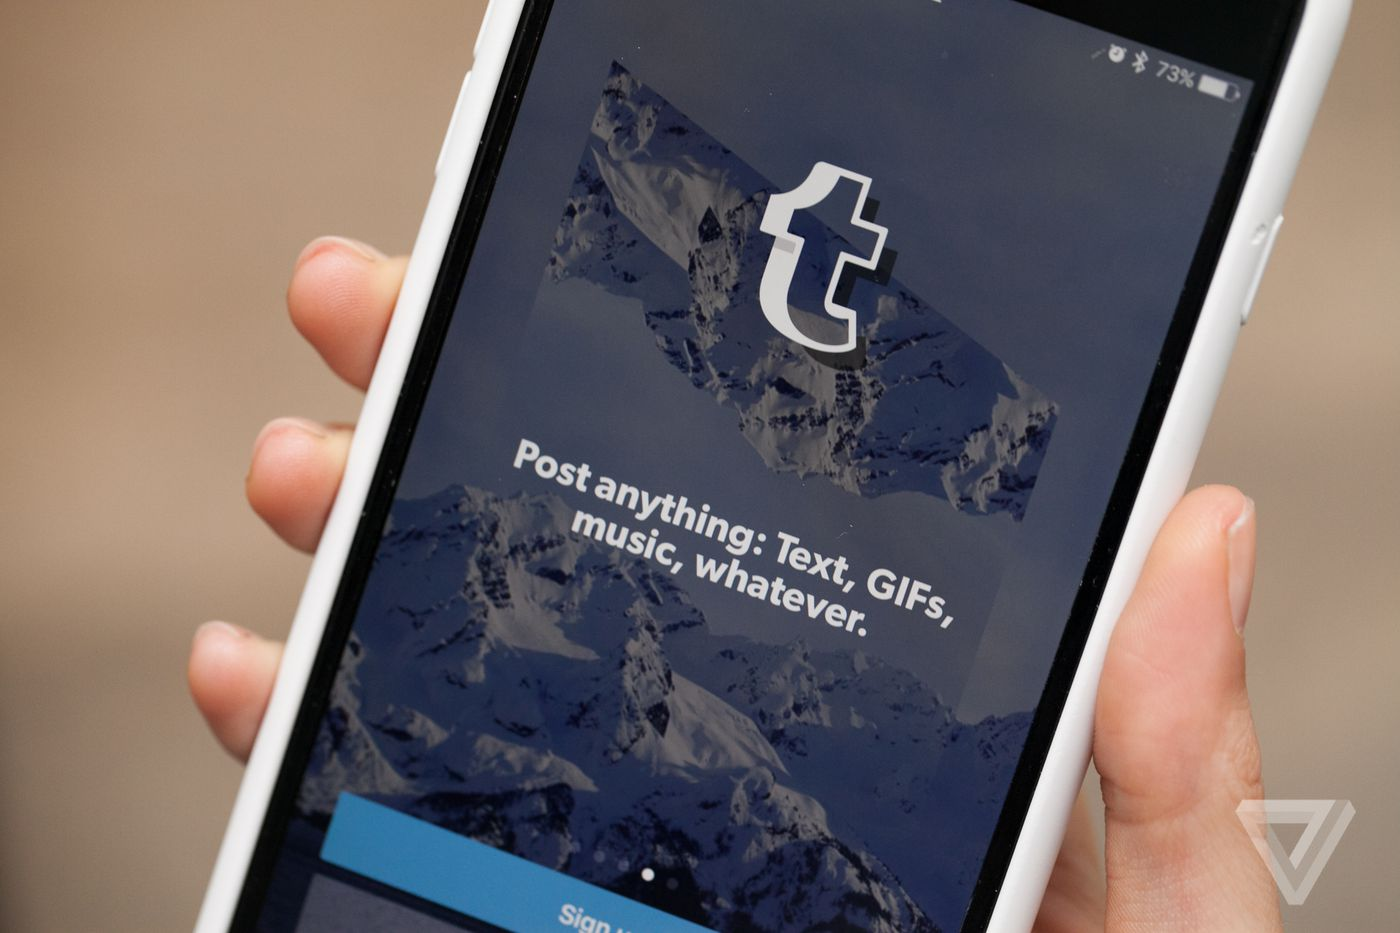 Tumblr was removed from Apple's App Store over child